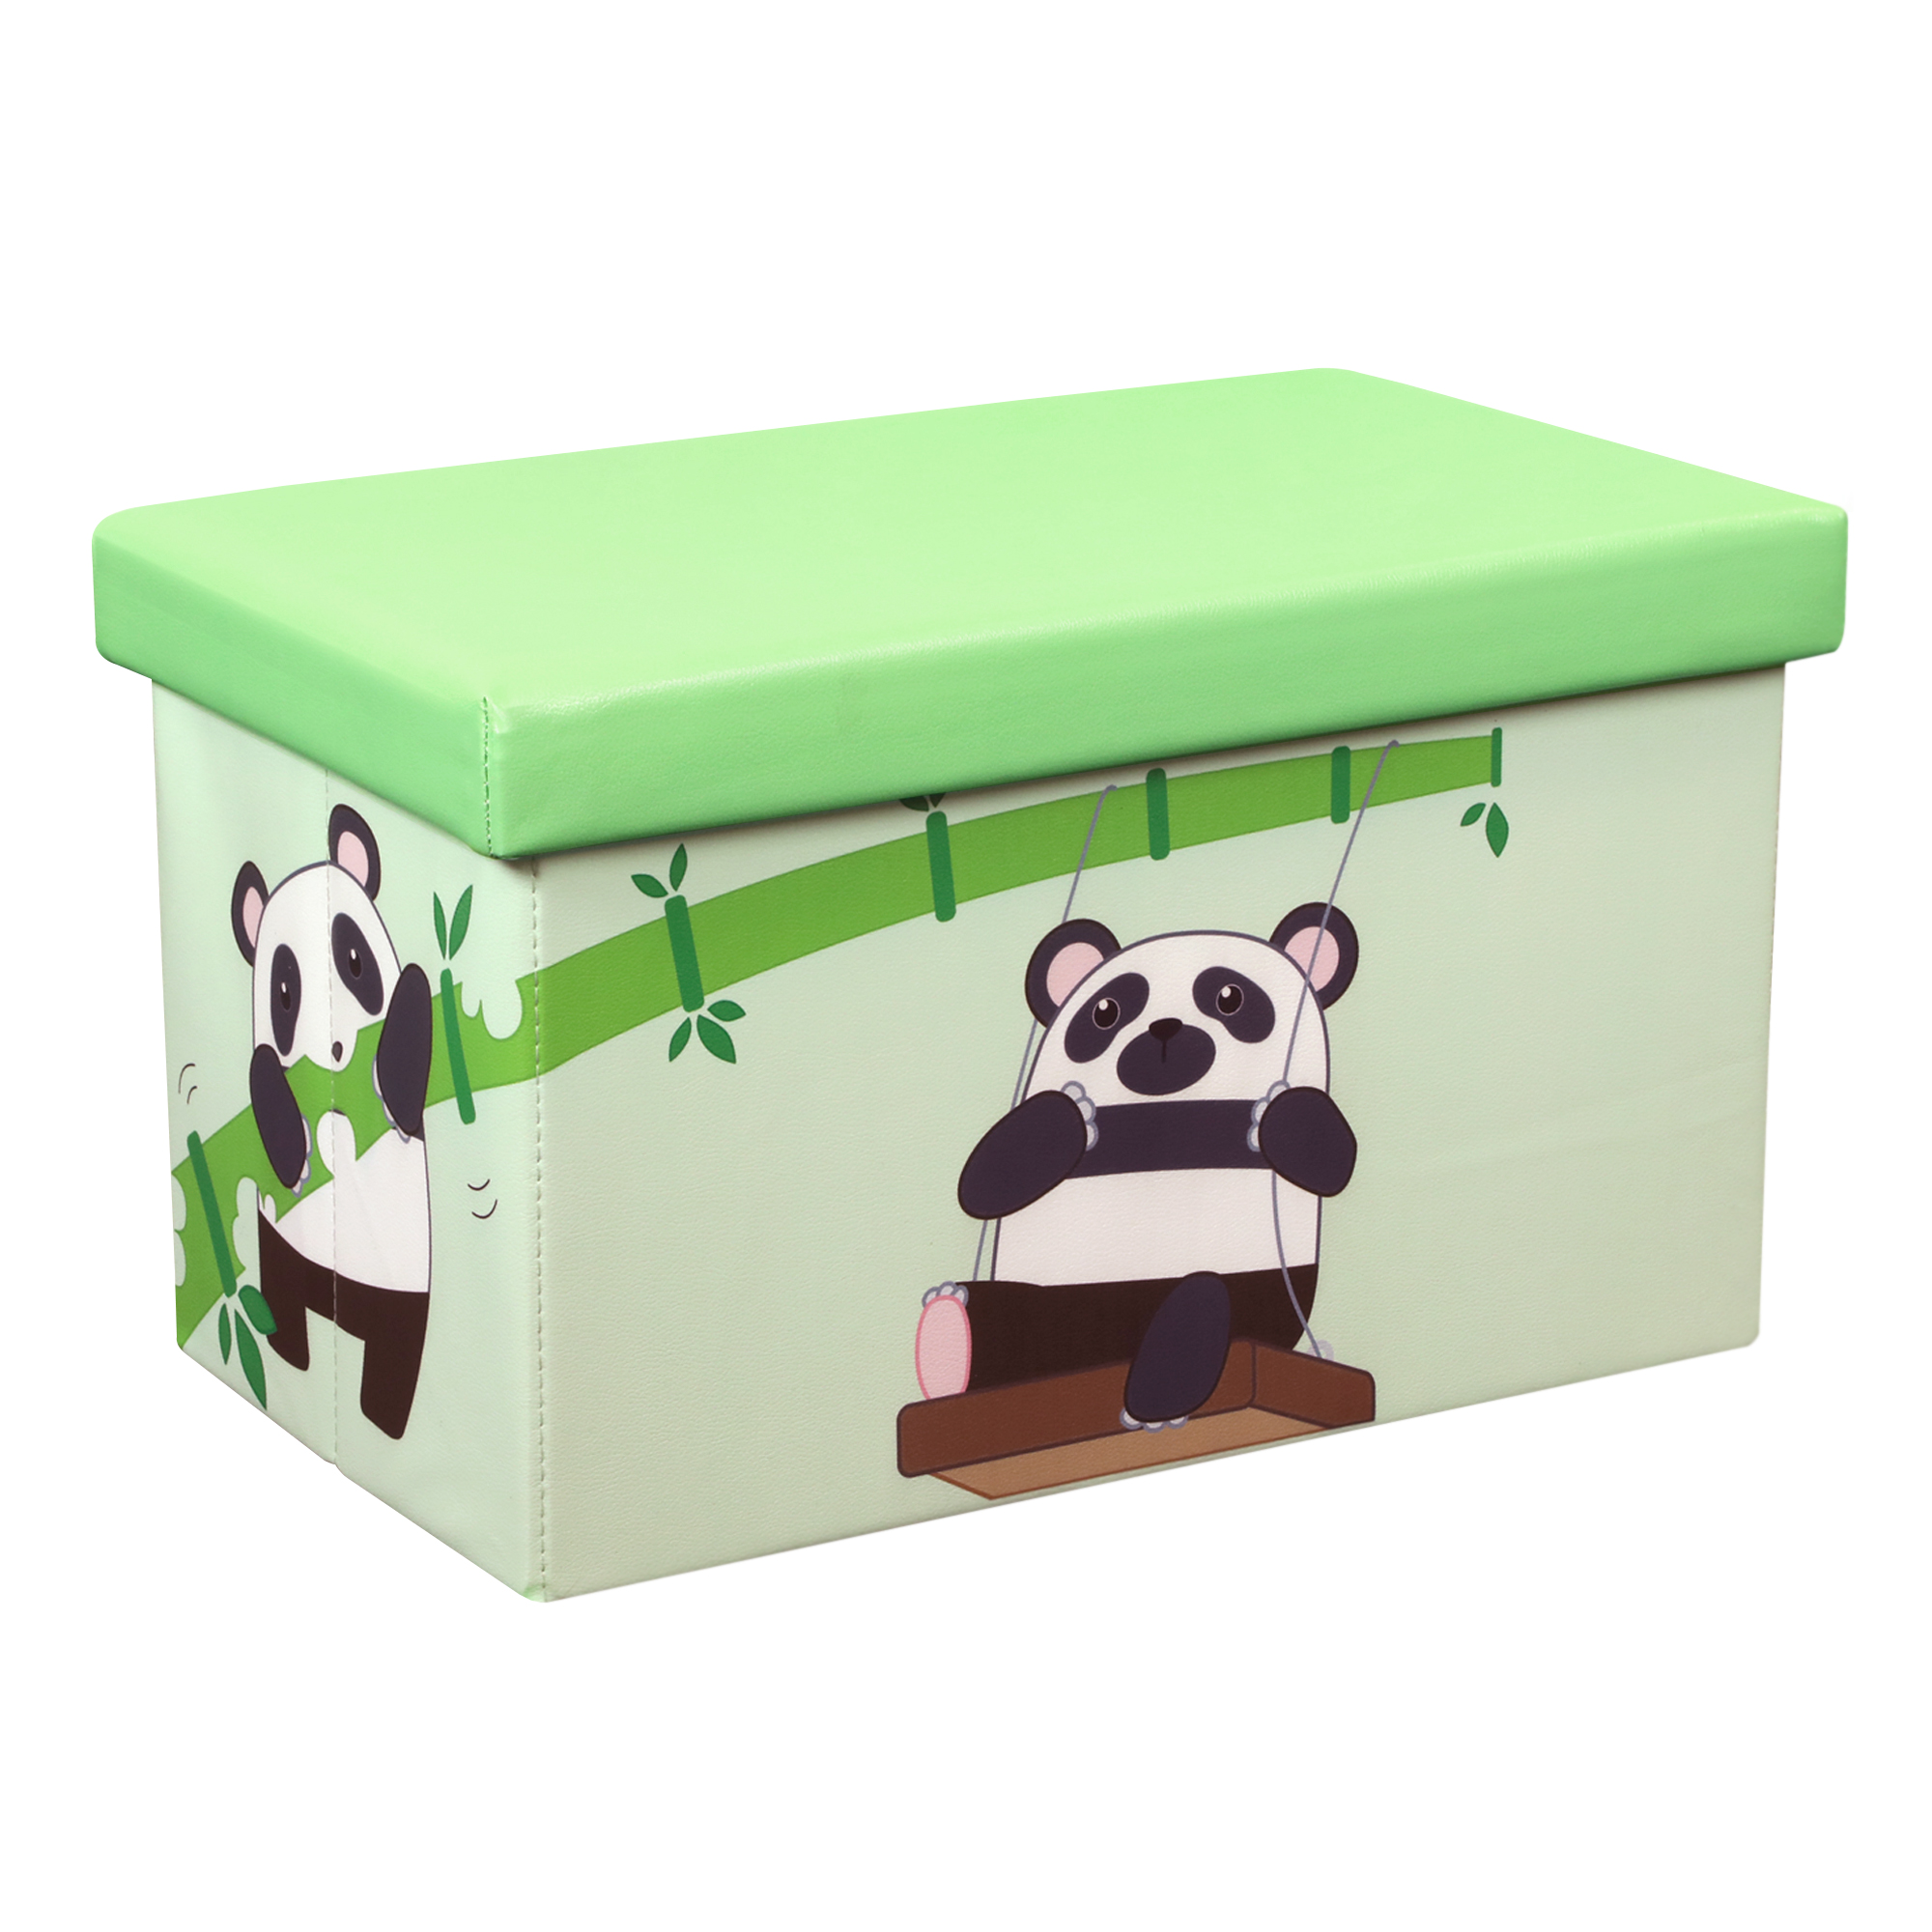 Otto & Ben 23 Inch Toy Storage Chest Organizer, Panda and Bamboo